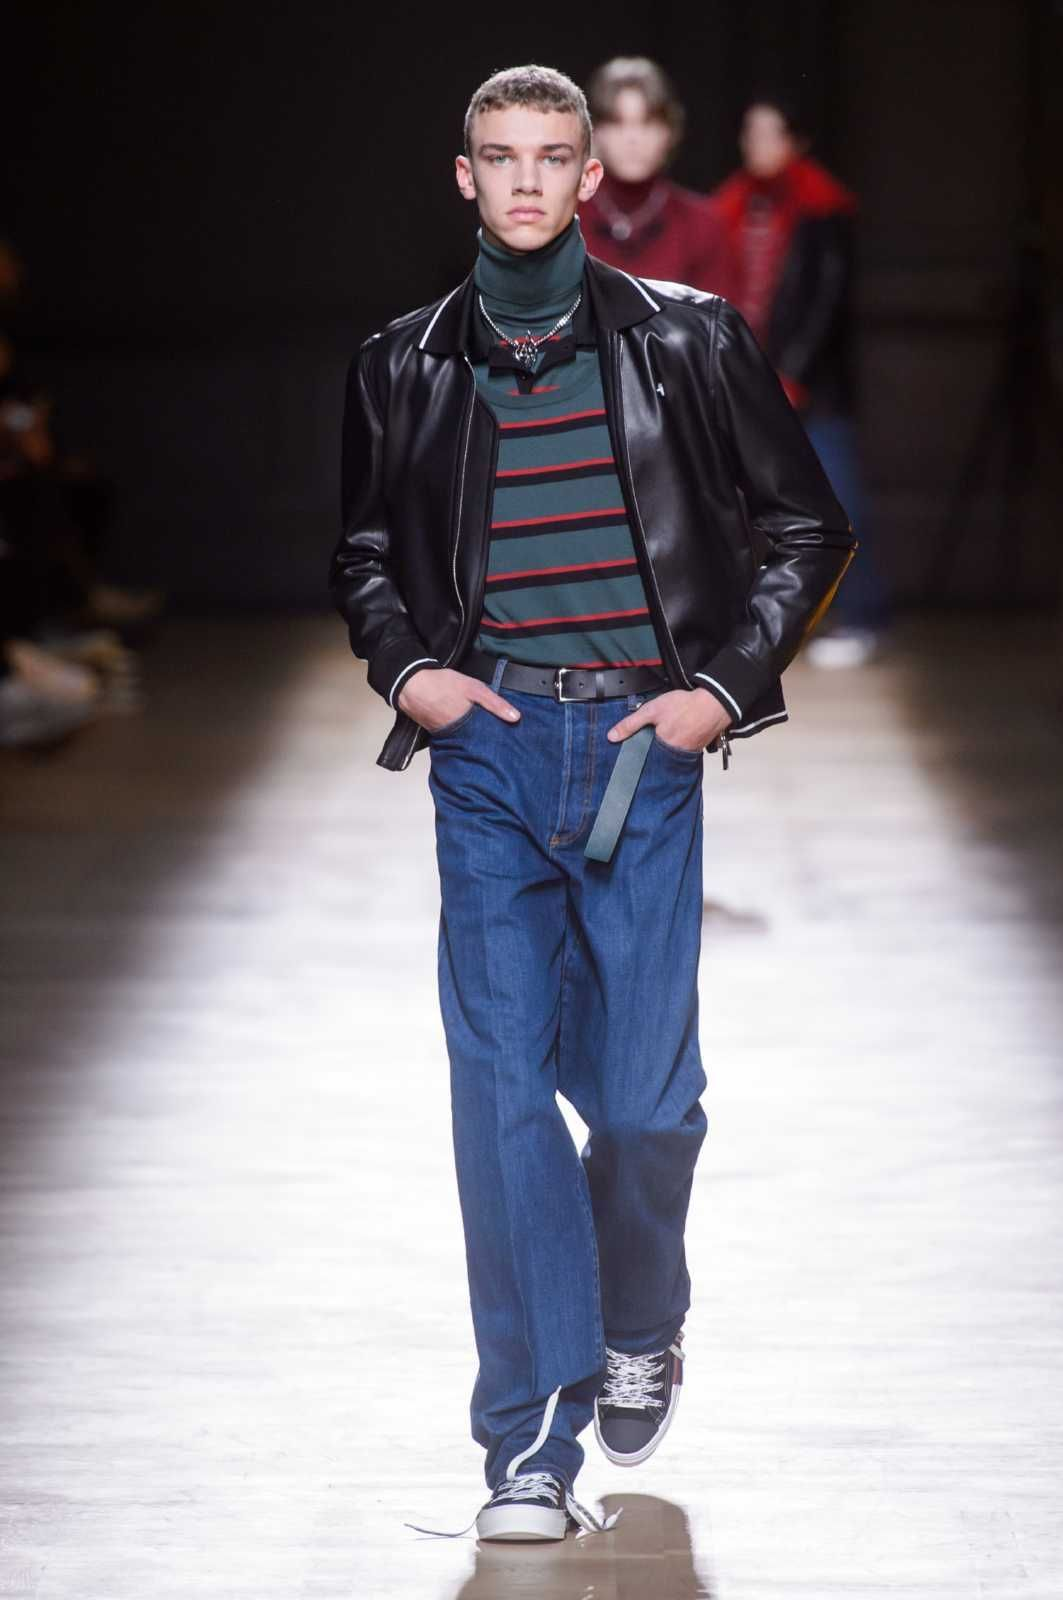 Male Fashion Trends Dior Homme Fall Winter 2018 2019 Paris